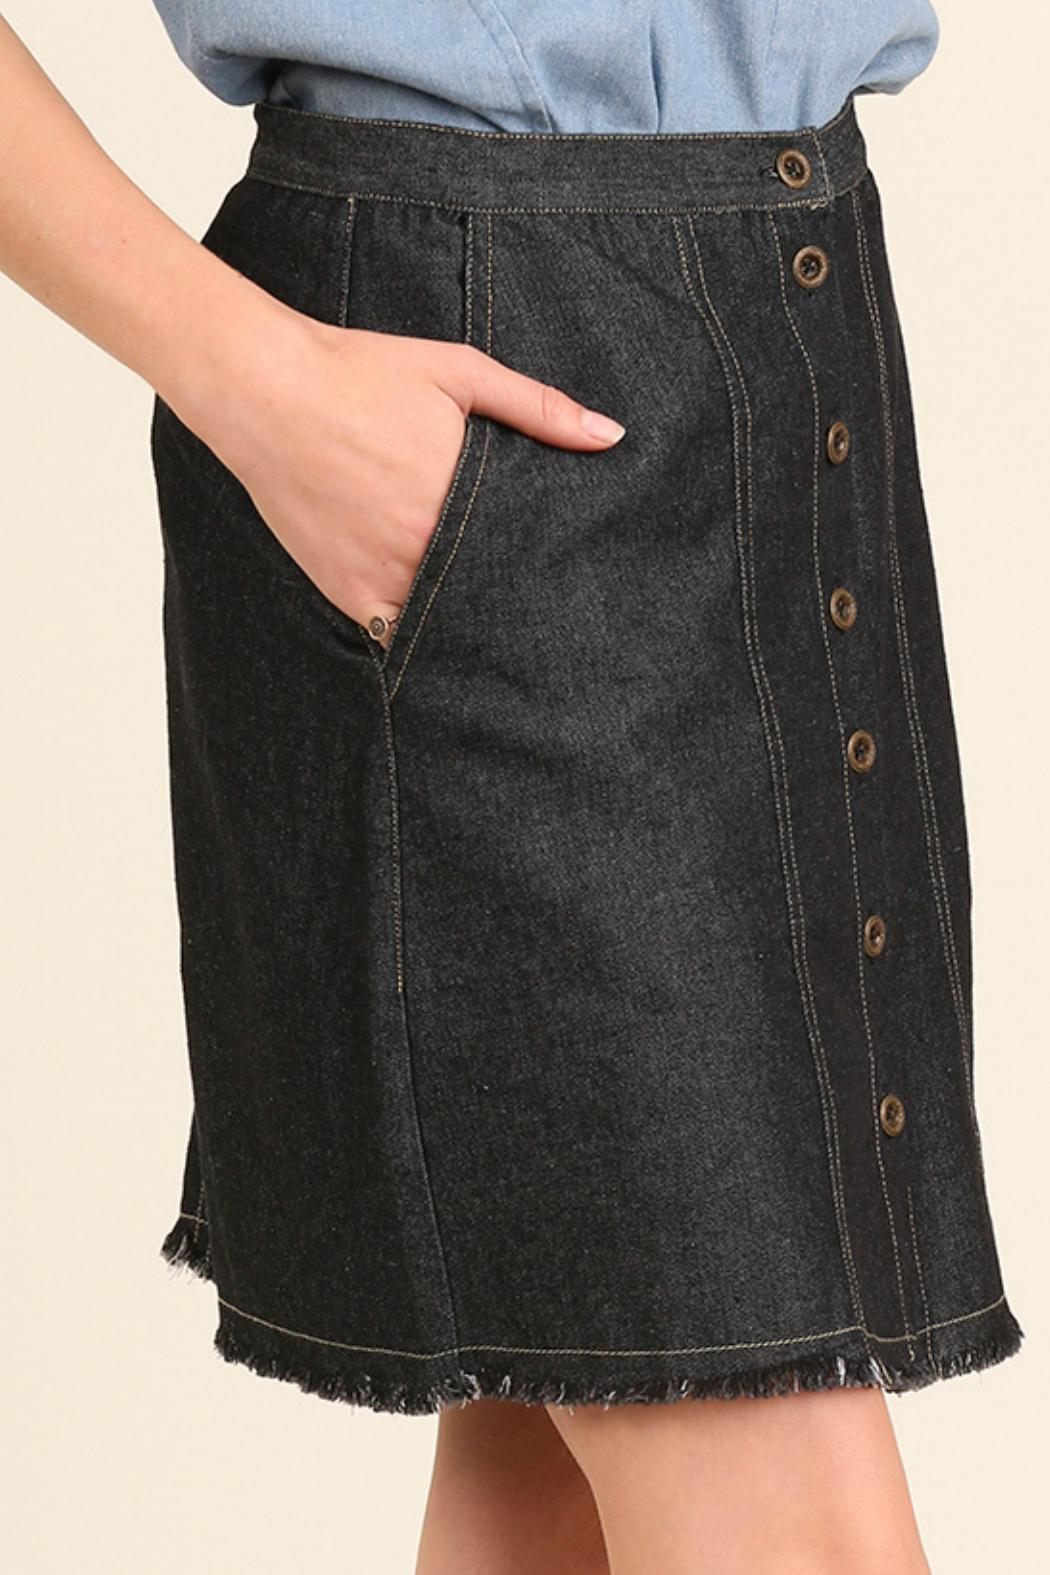 Umgee USA Black Denim Skirt from Montana by Foxwood Boutique ...